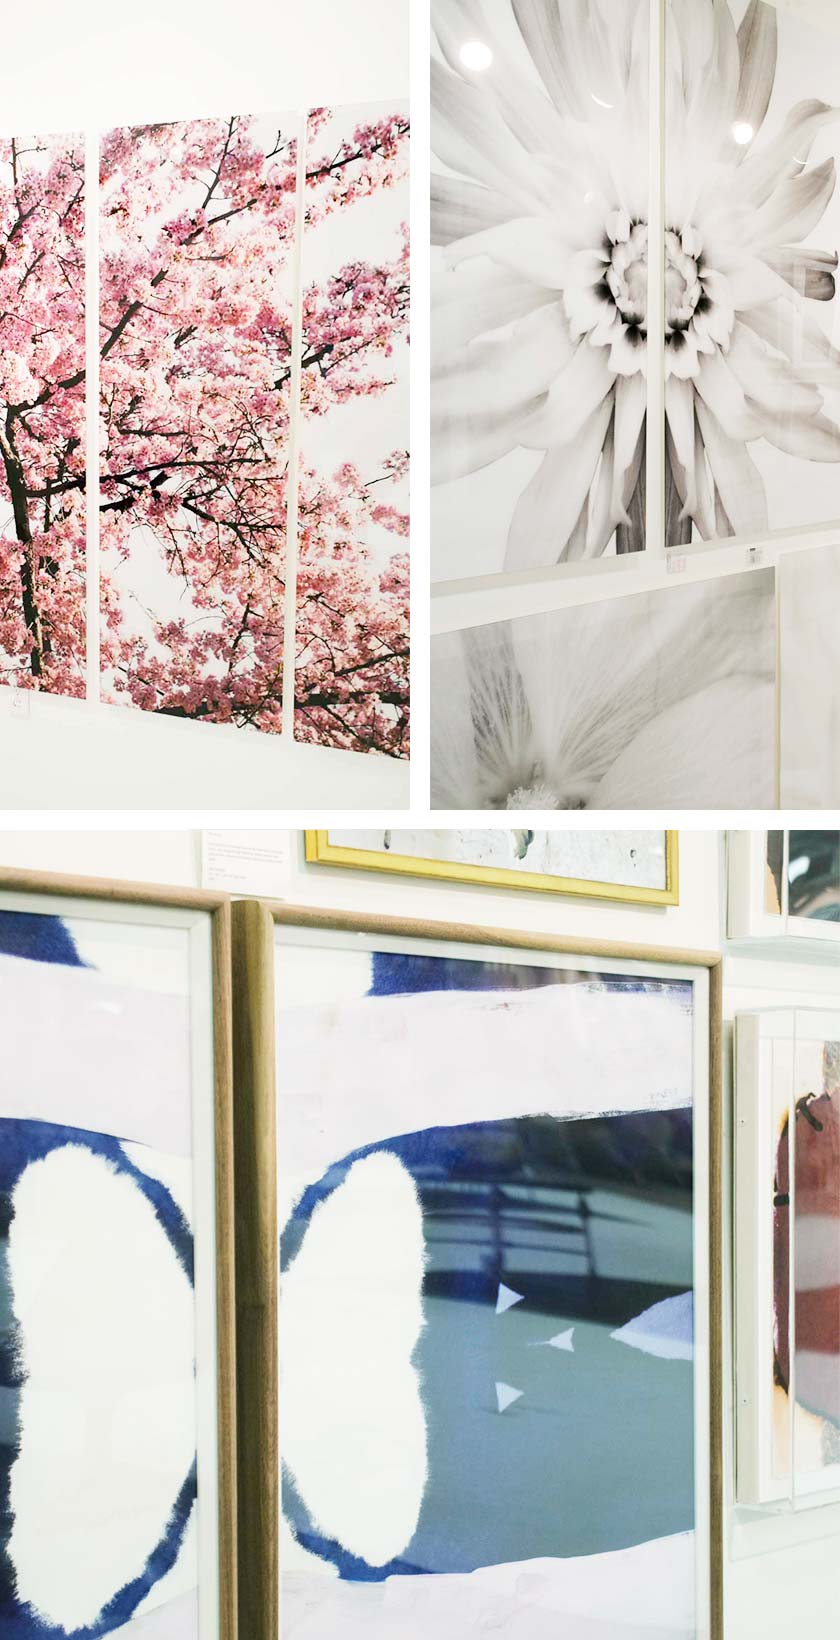 Diptych and triptych artwork decor trend from AmericasMart on Thou Swell @thouswellblog